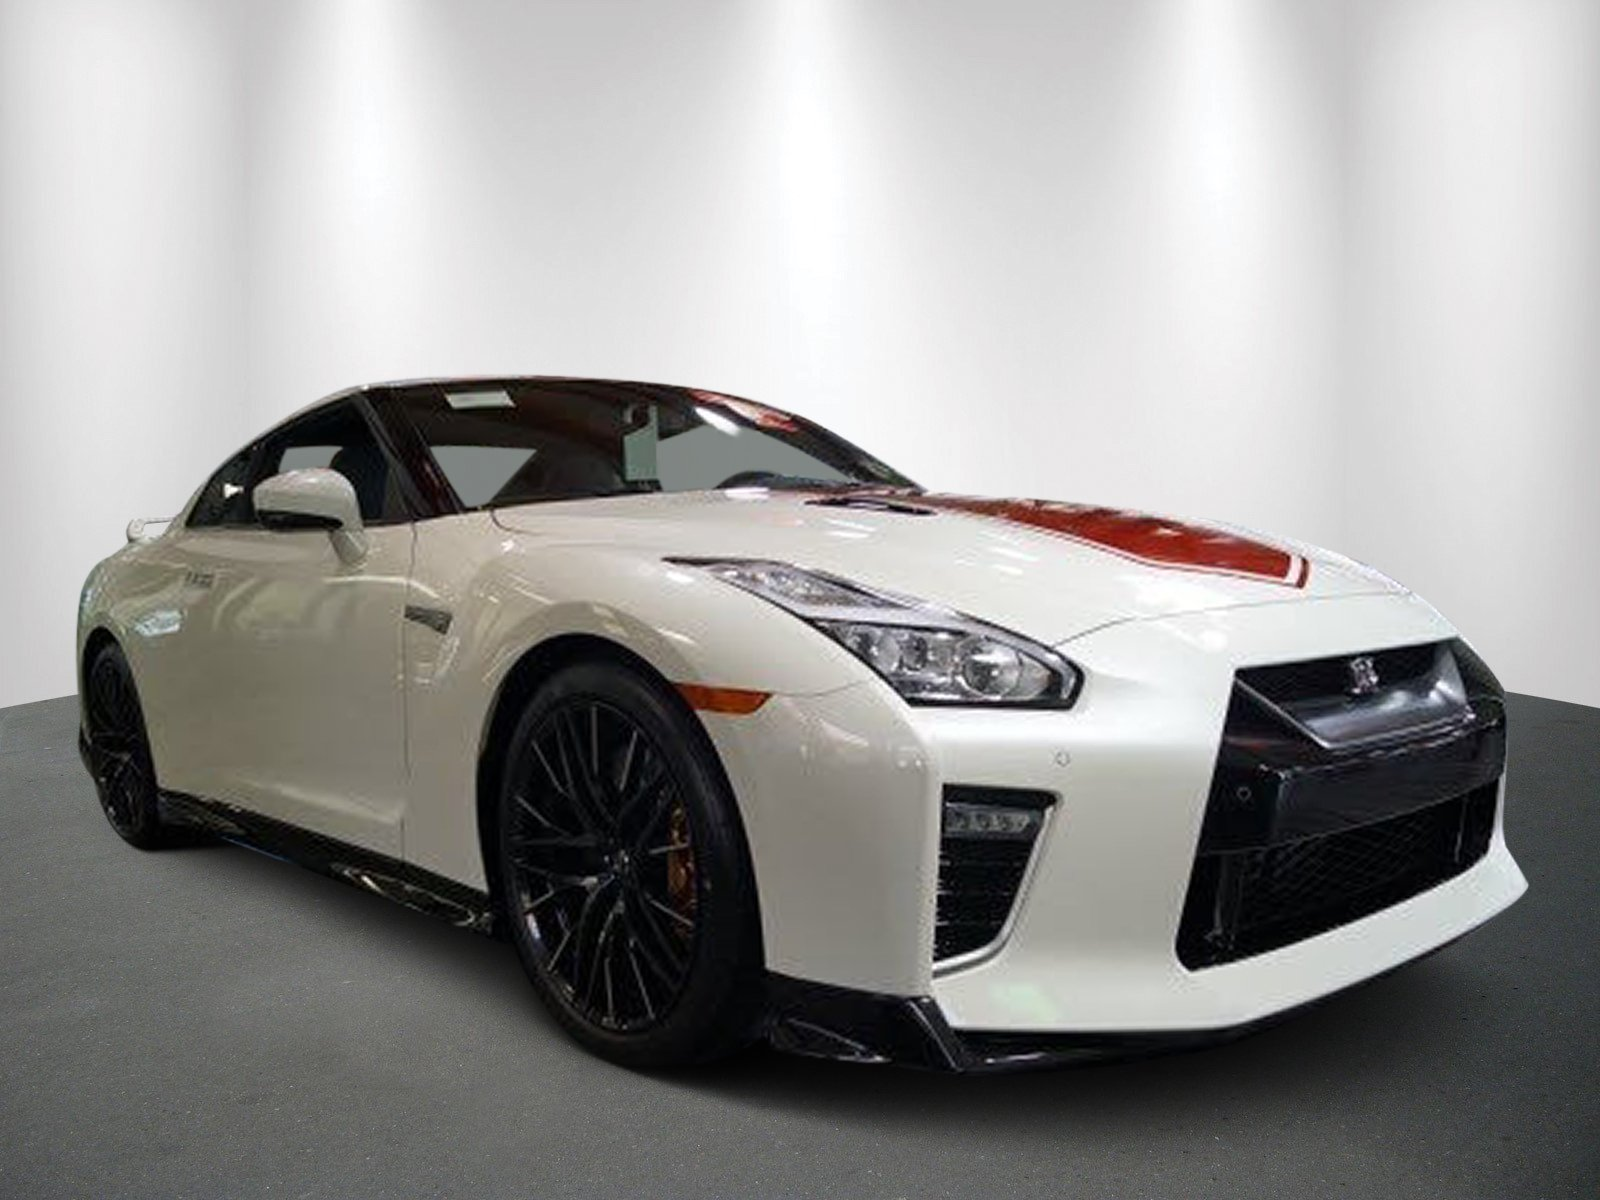 New 2020 Nissan GT-R Premium 50th Anniversary Edition